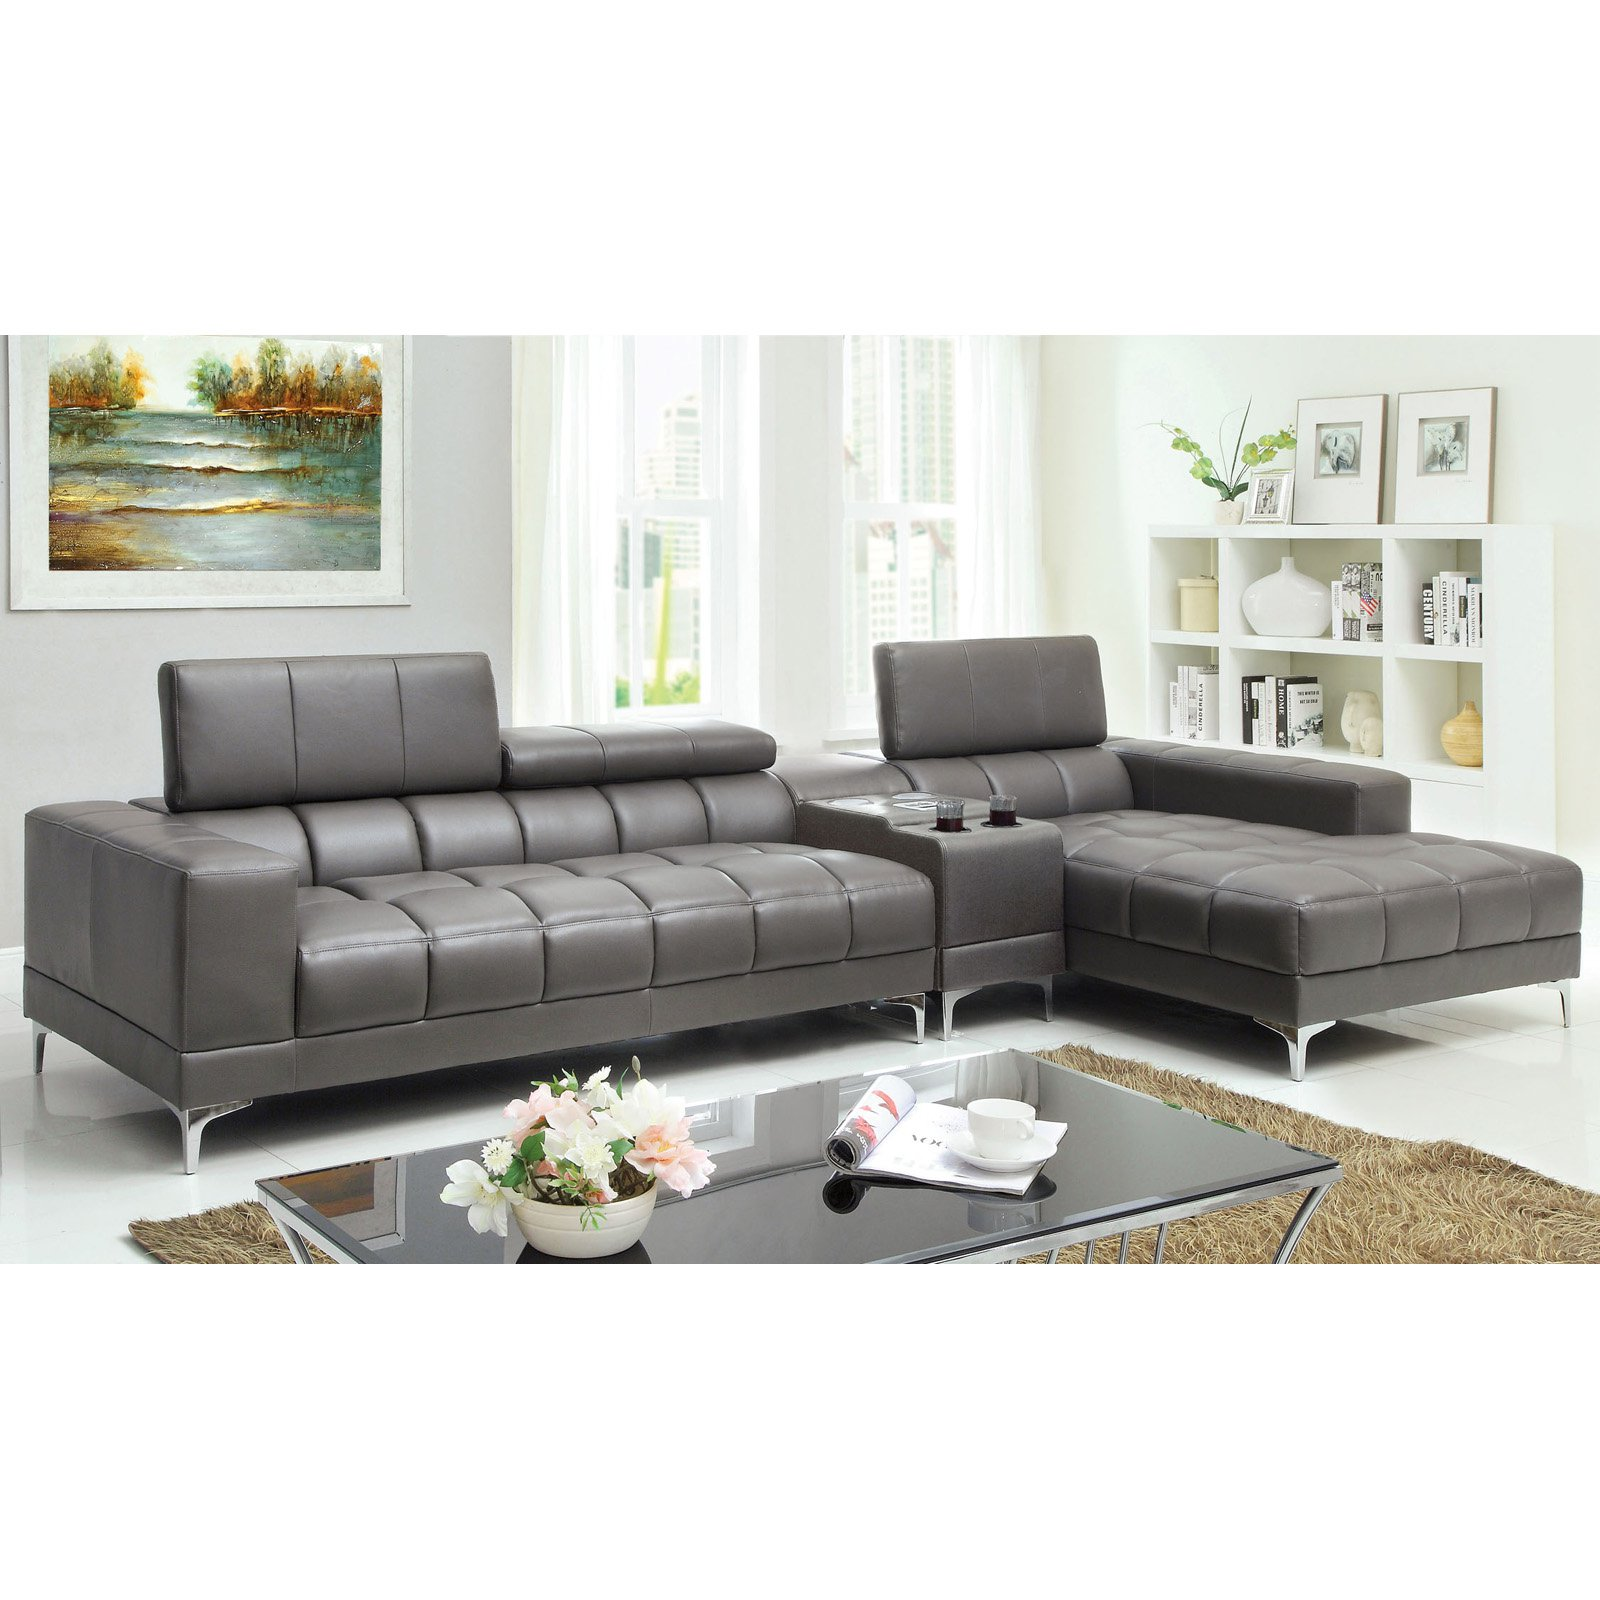 Inspirational Gray Leather Sectional Sofa 88 For Your Contemporary Sofa  Inspiration With Gray Leather Sectional Sofa